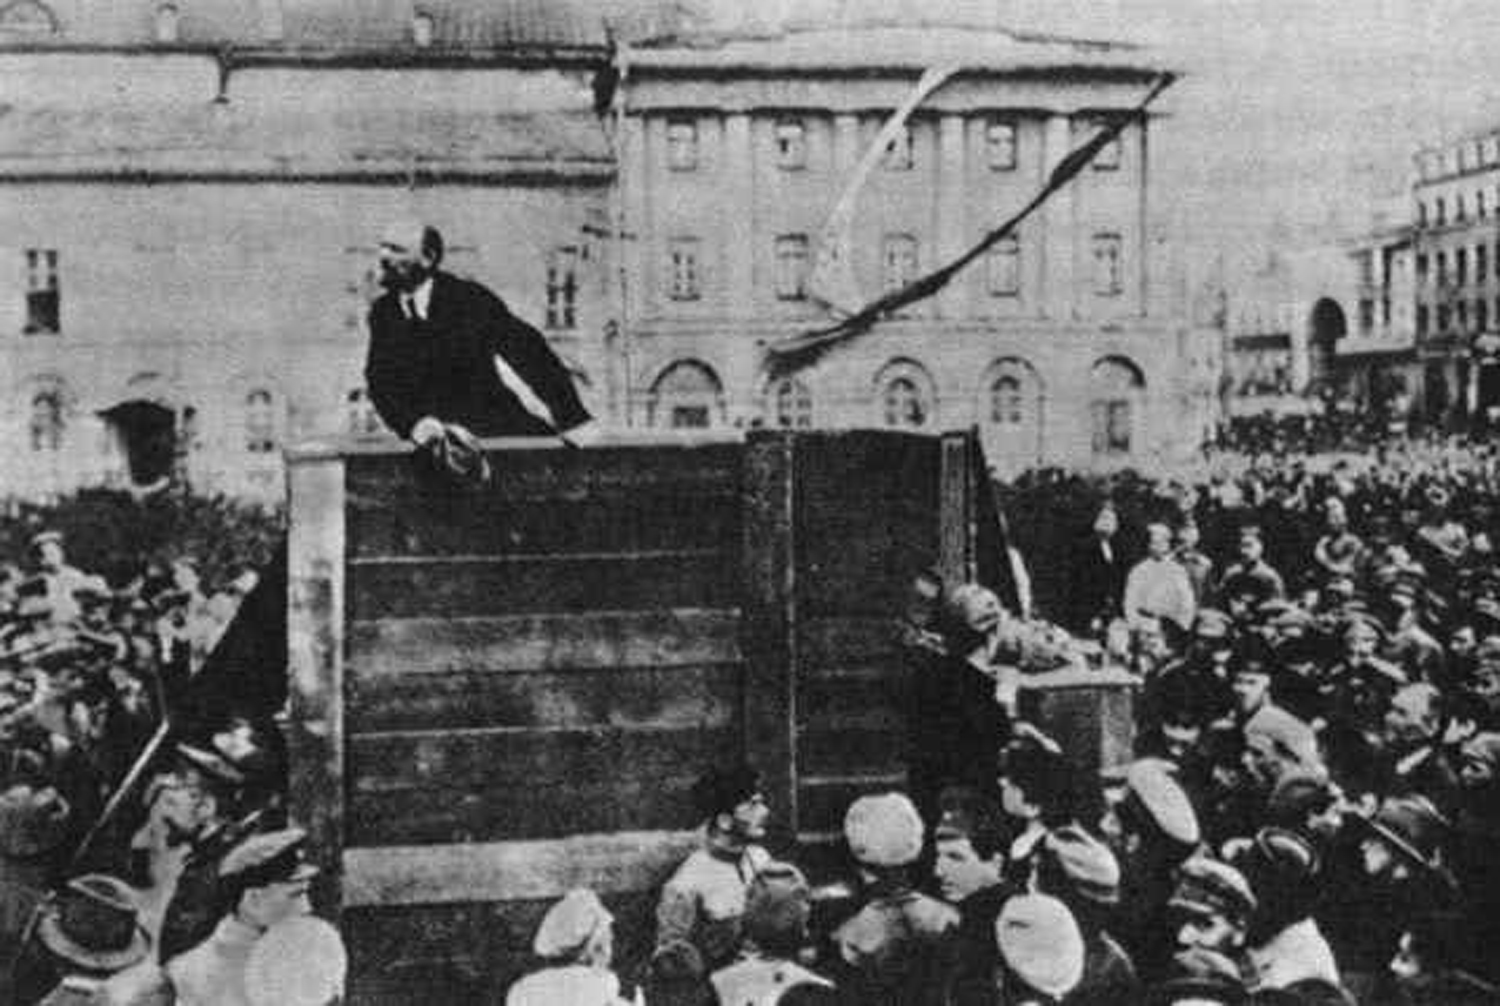 Lenin Addresses the Troops, 1920                               One of the most widely reproduced scenes of the Russian Revolution, this photograph was taken by G.P. Goldshtein and was published in myriad forms during the Soviet era. The moment captures Lenin exhorting soldiers from the Red Army as they prepare to depart for the Polish front, where they would fight the troops of Josef Pilsudski.